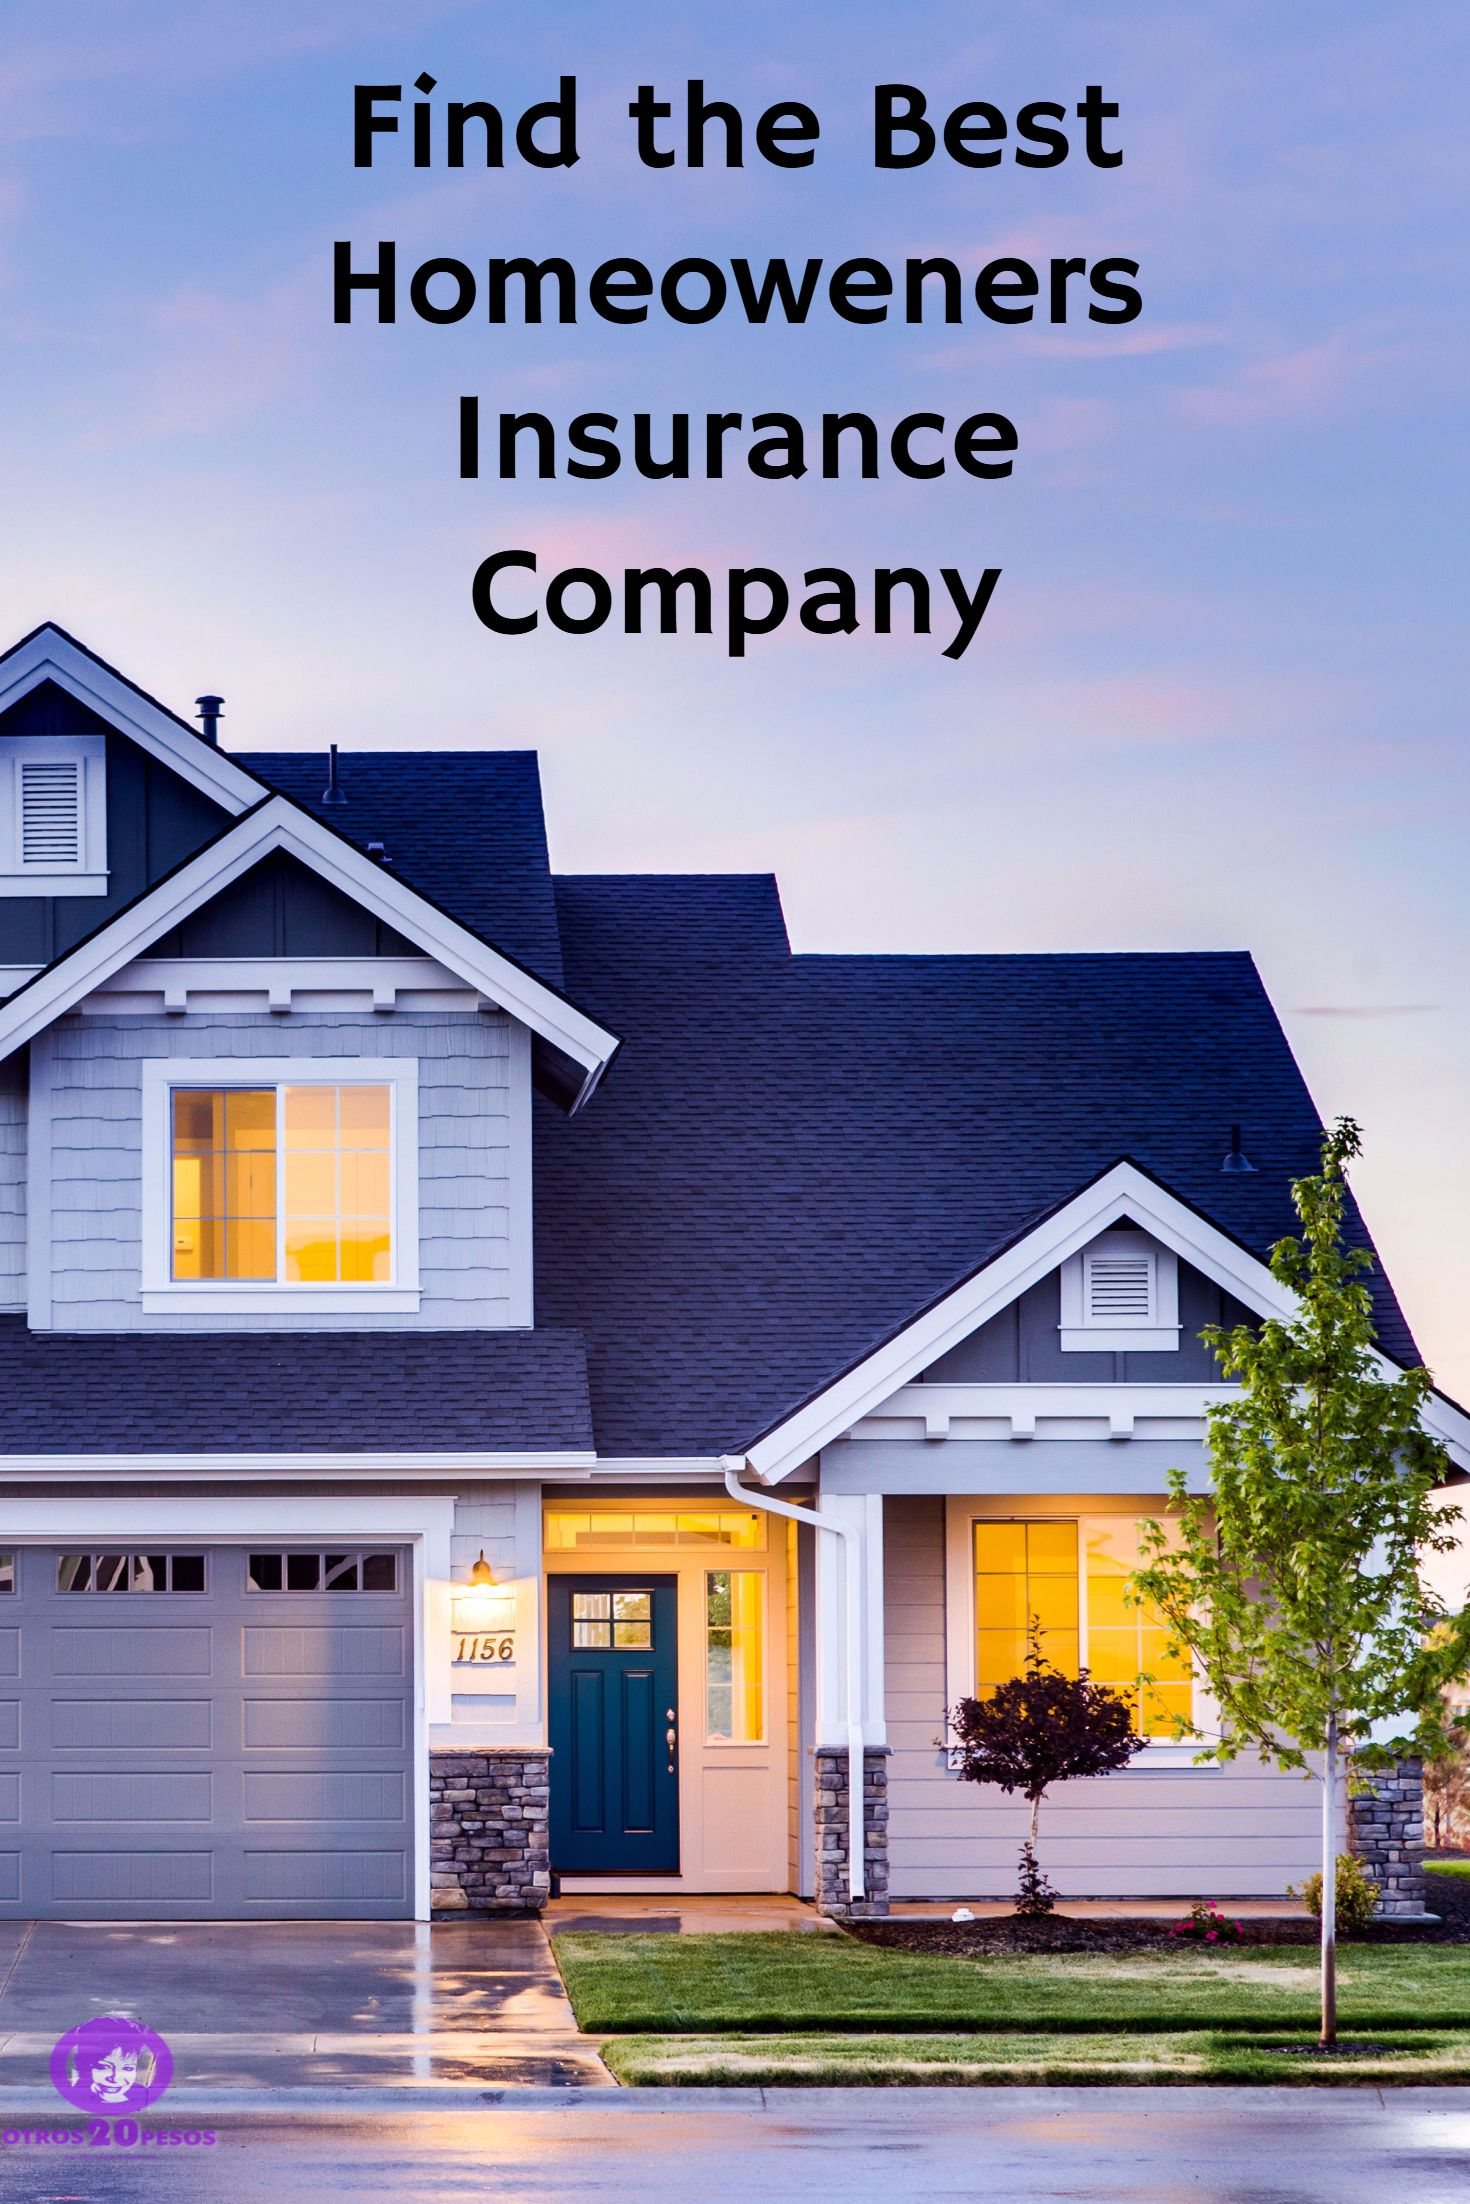 Find The Best Homeoweners Insurance Company Home Improvement Loans Best Homeowners Insurance Homeowner